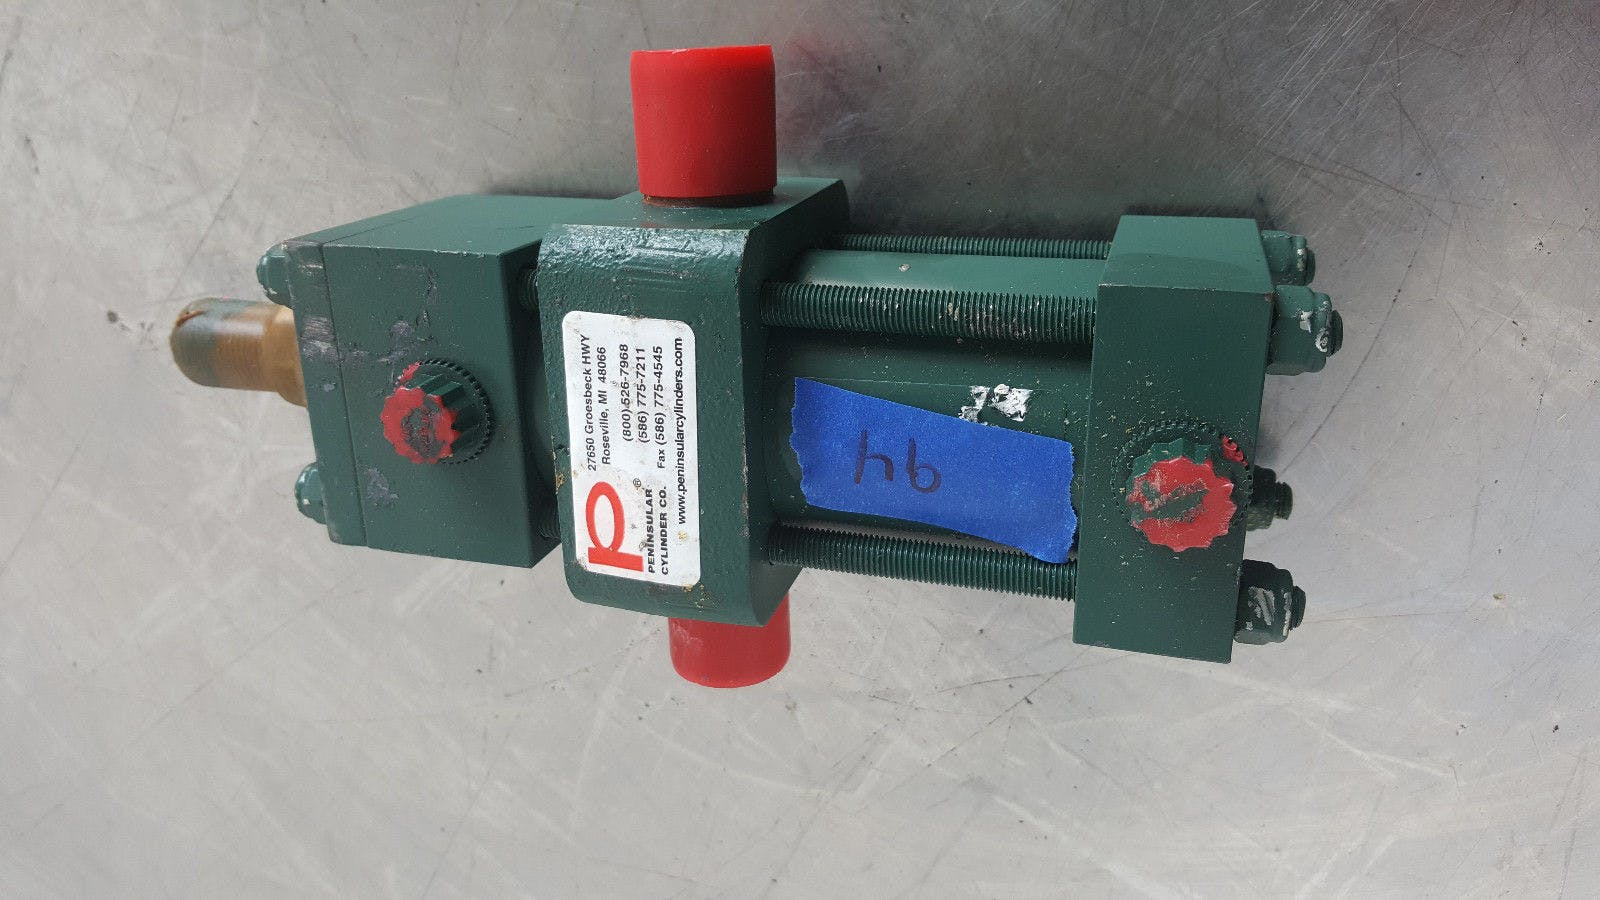 Peninsular 02.00 CP6200 3.000 250 Psi Air Pneumatic Cylinder New - B - sold by Jak's Restaurant Supply